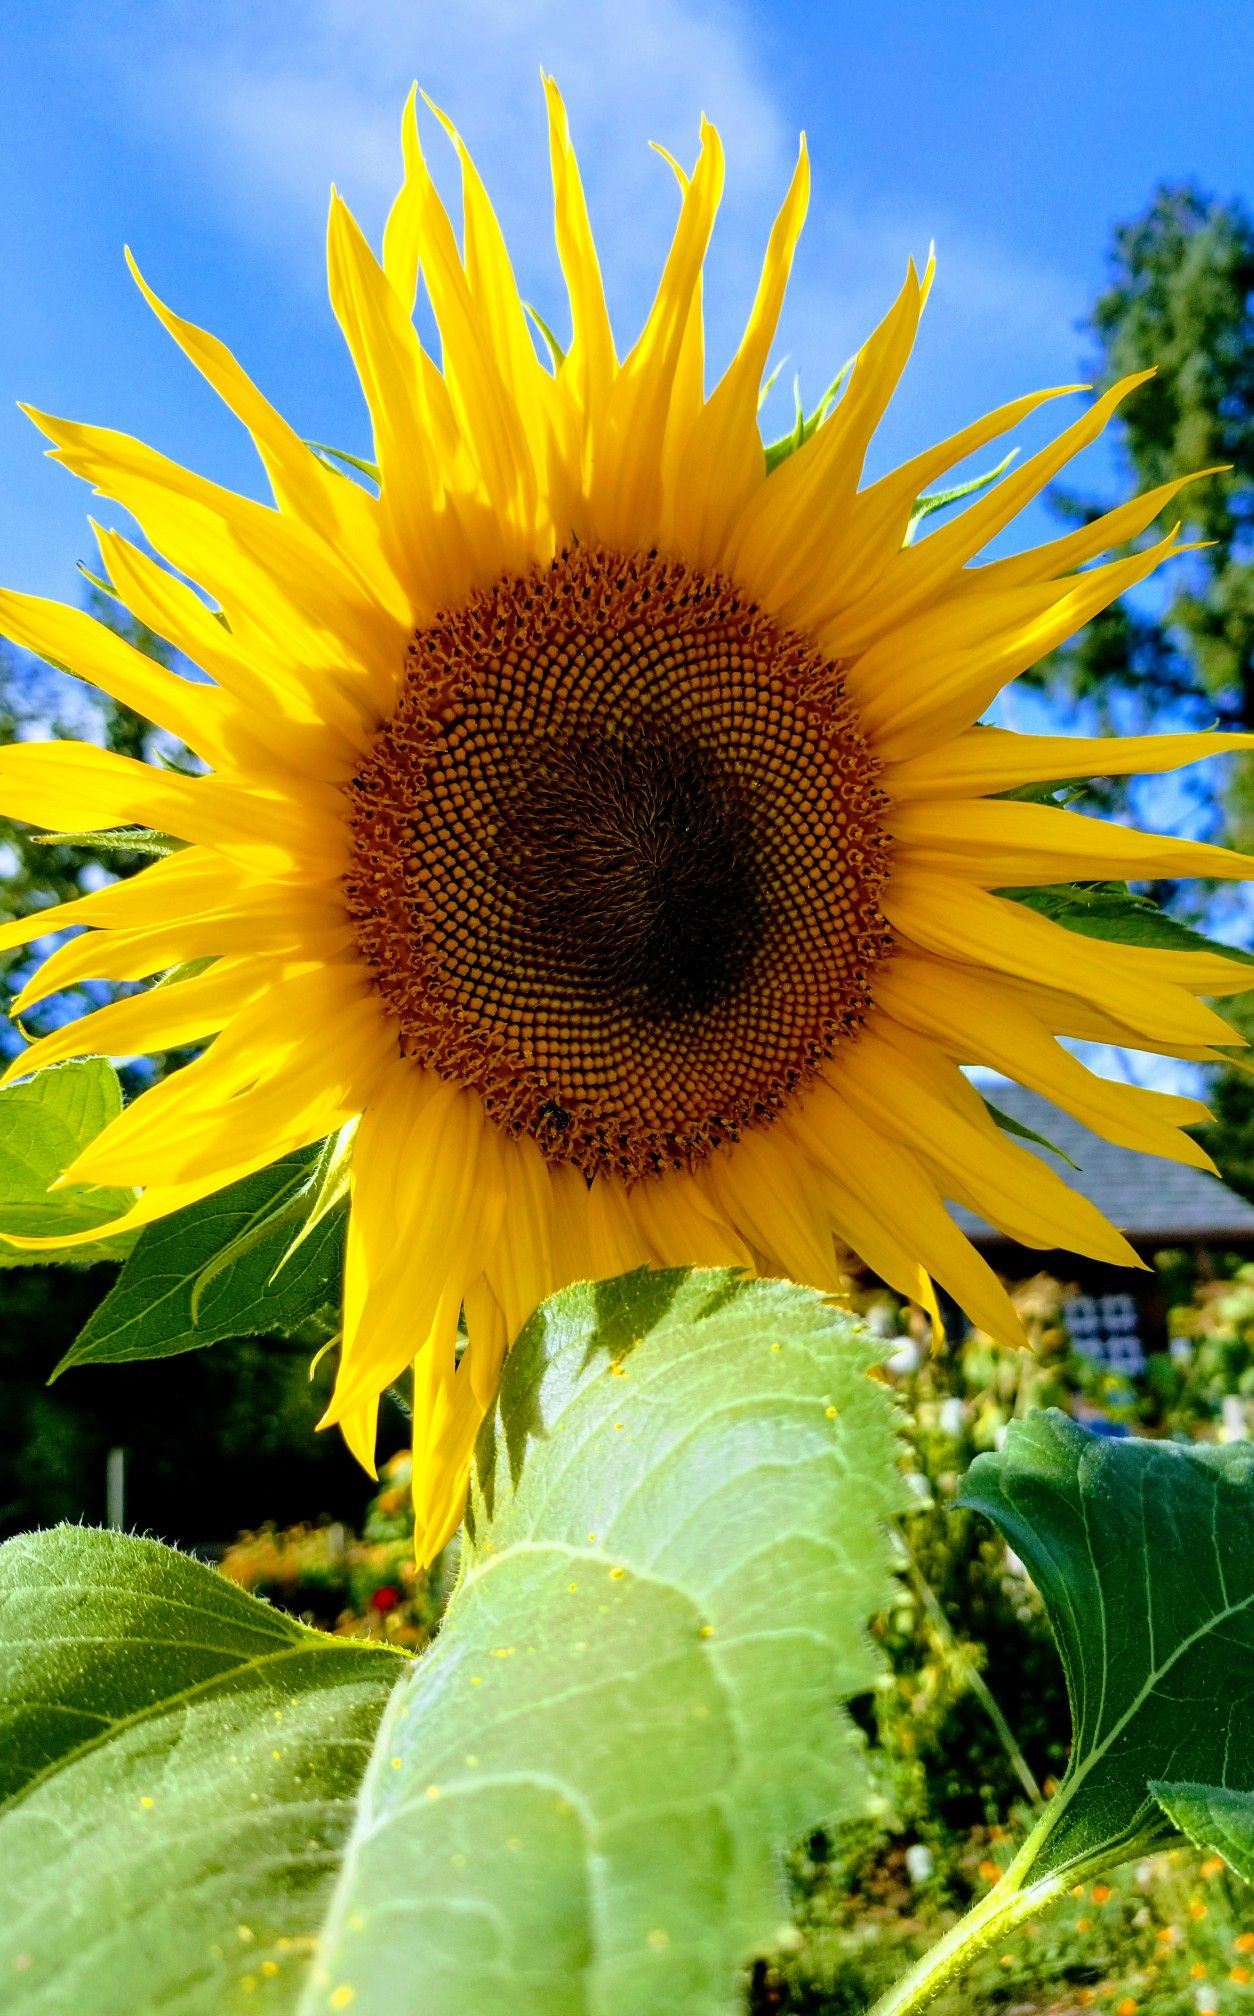 Sunflowers used for bdsm play